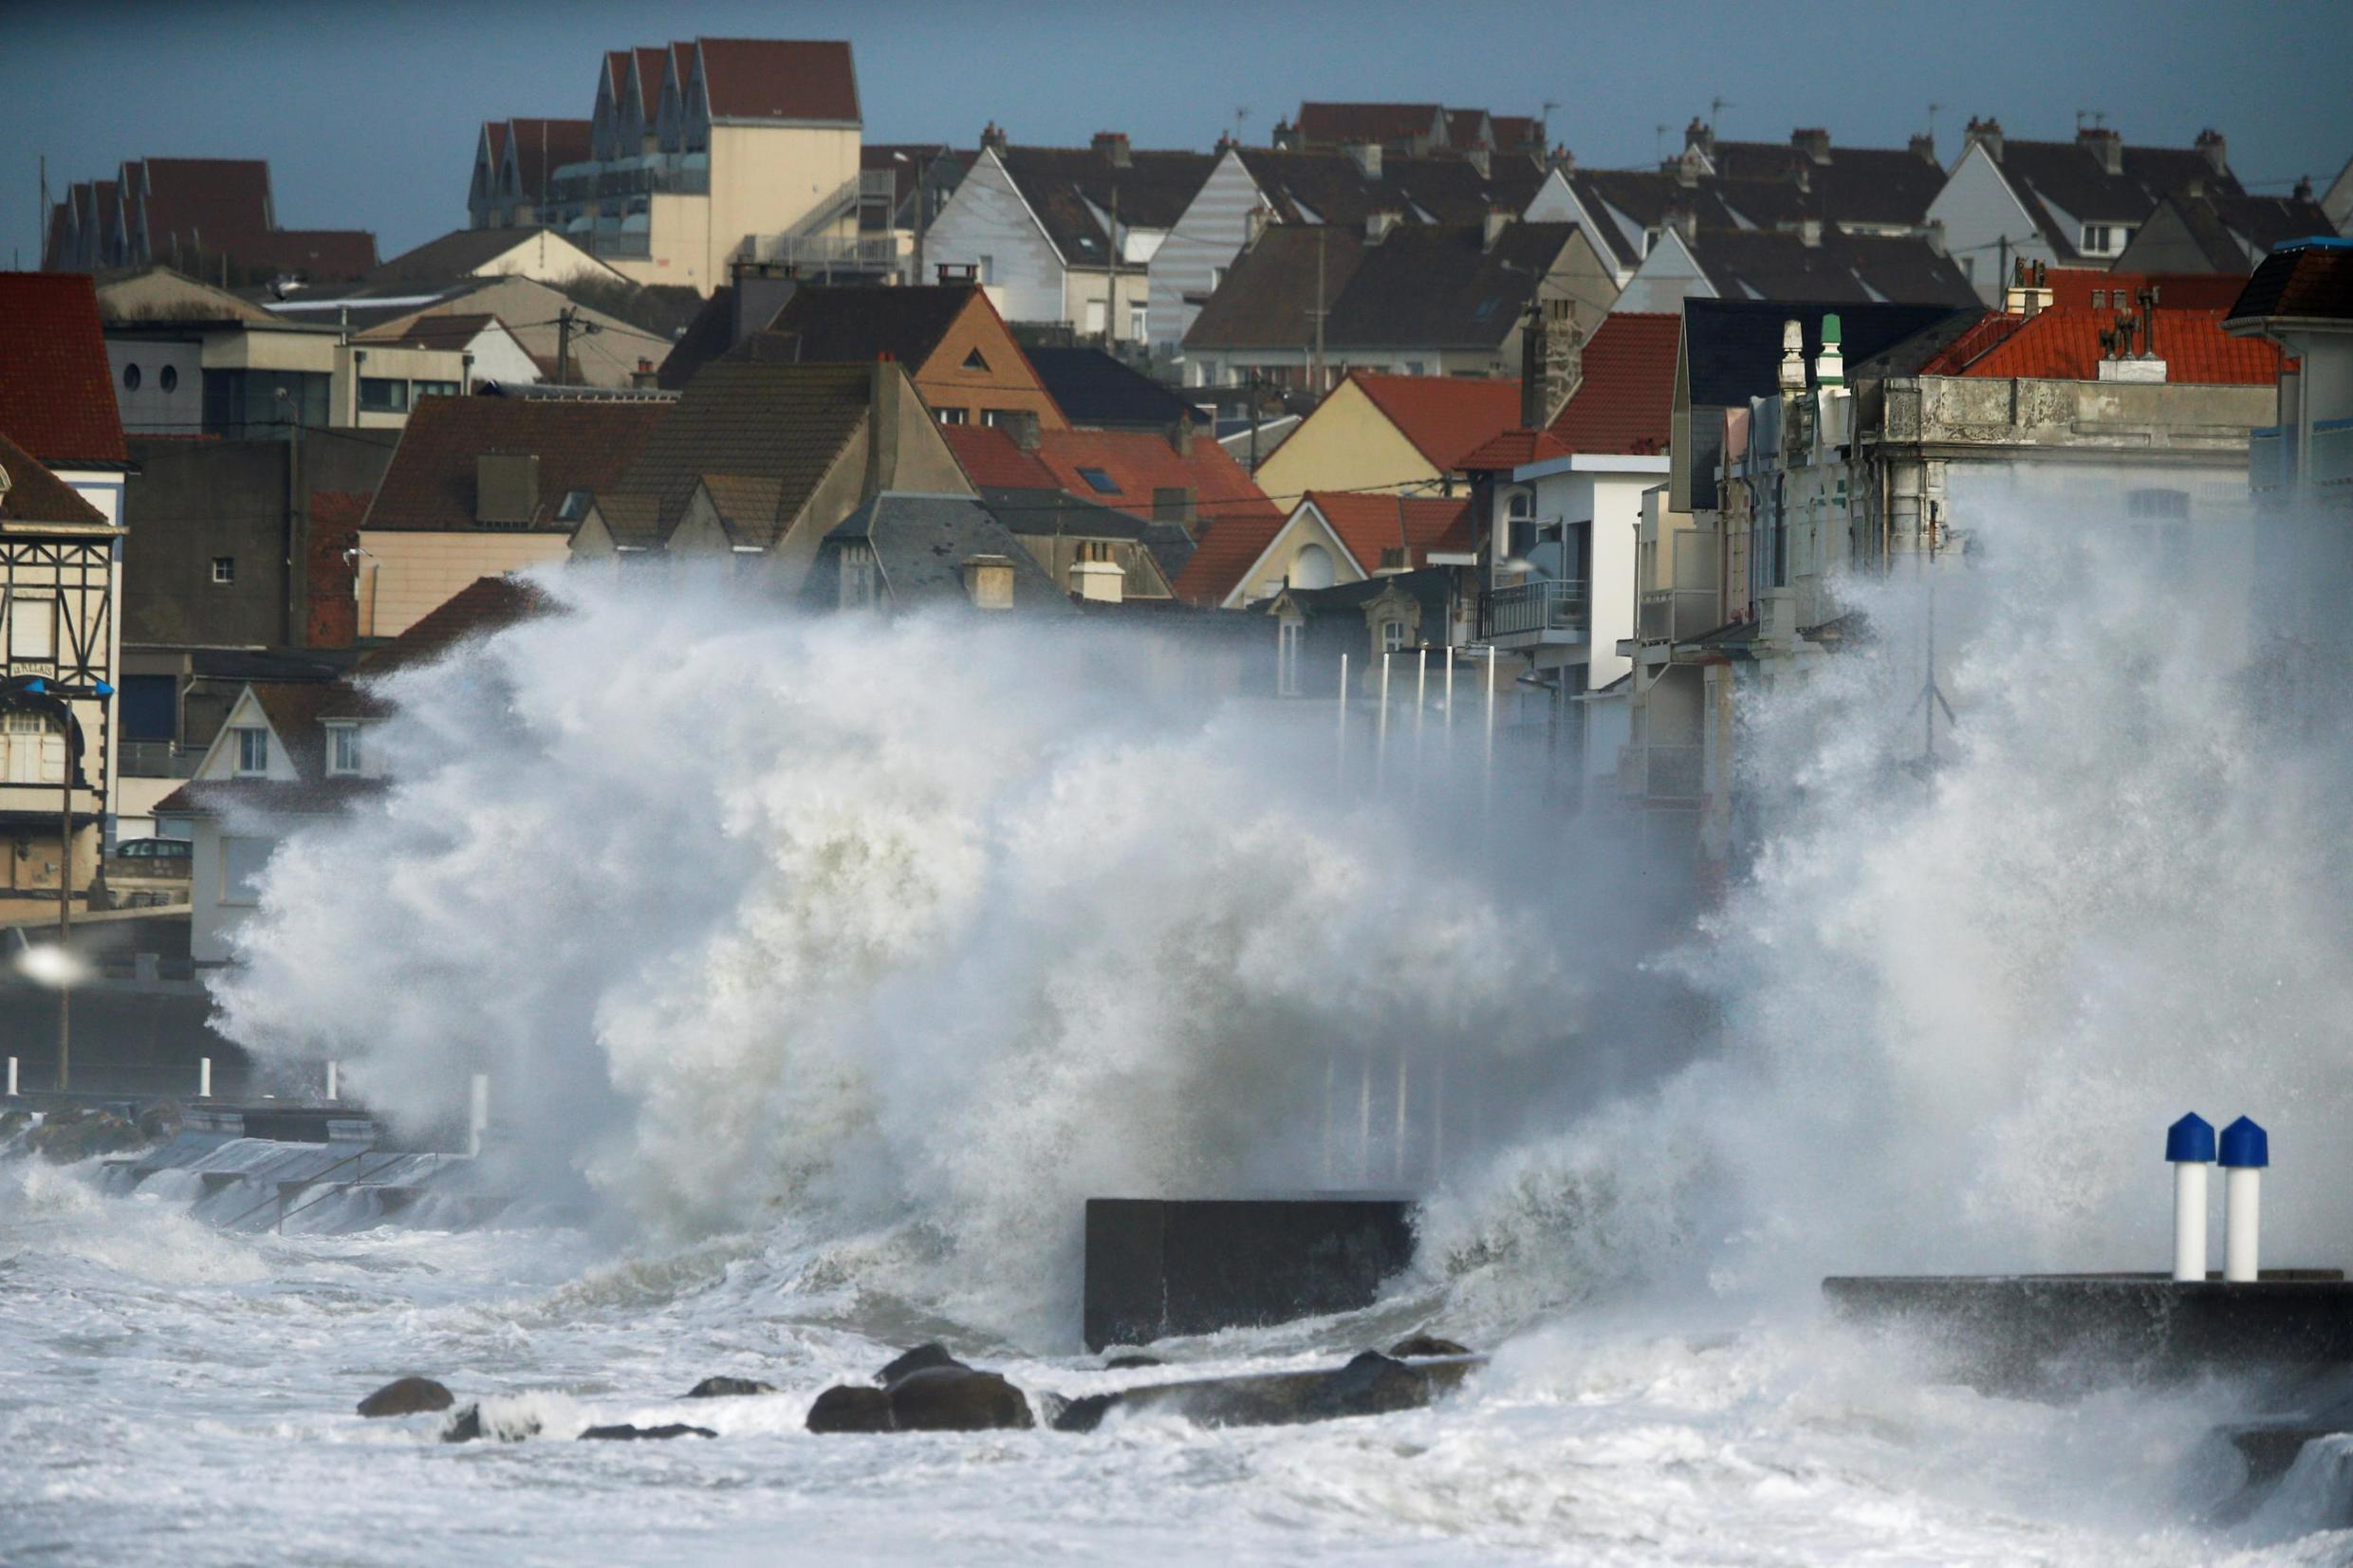 Waves crash against the breakwater during Storm Ciara at Wimereux, France, February 10, 2020.